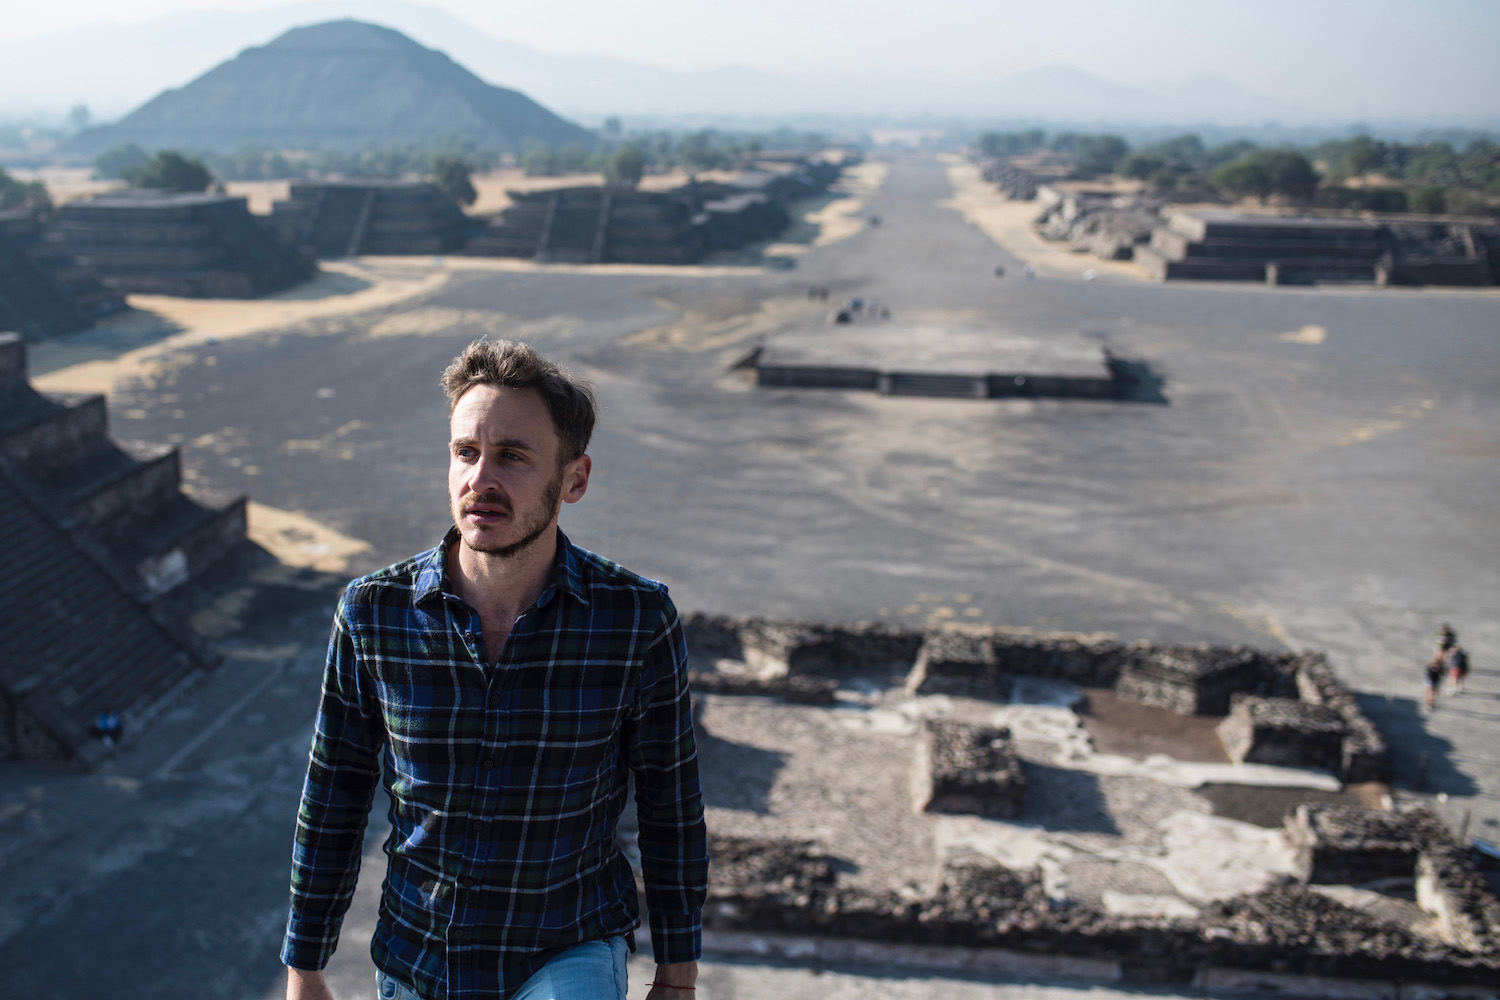 Robert Schrader at Teotihuacan, Mexico